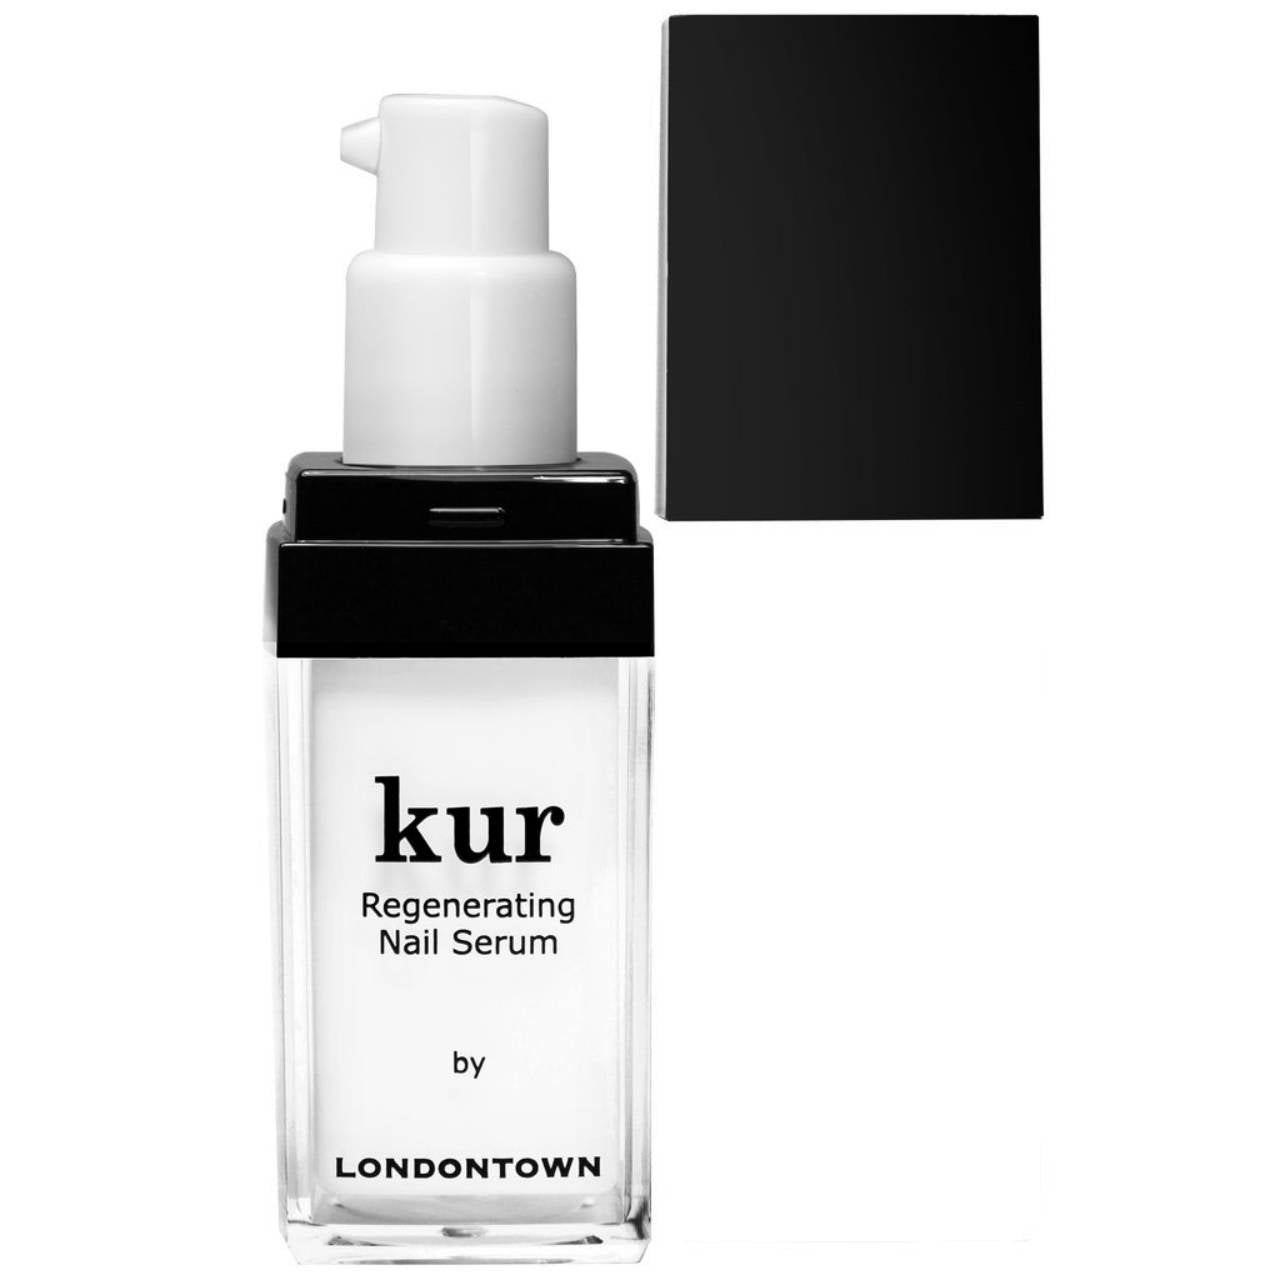 LONDONTOWN Kur Regenerating Nail Serum Black Cap